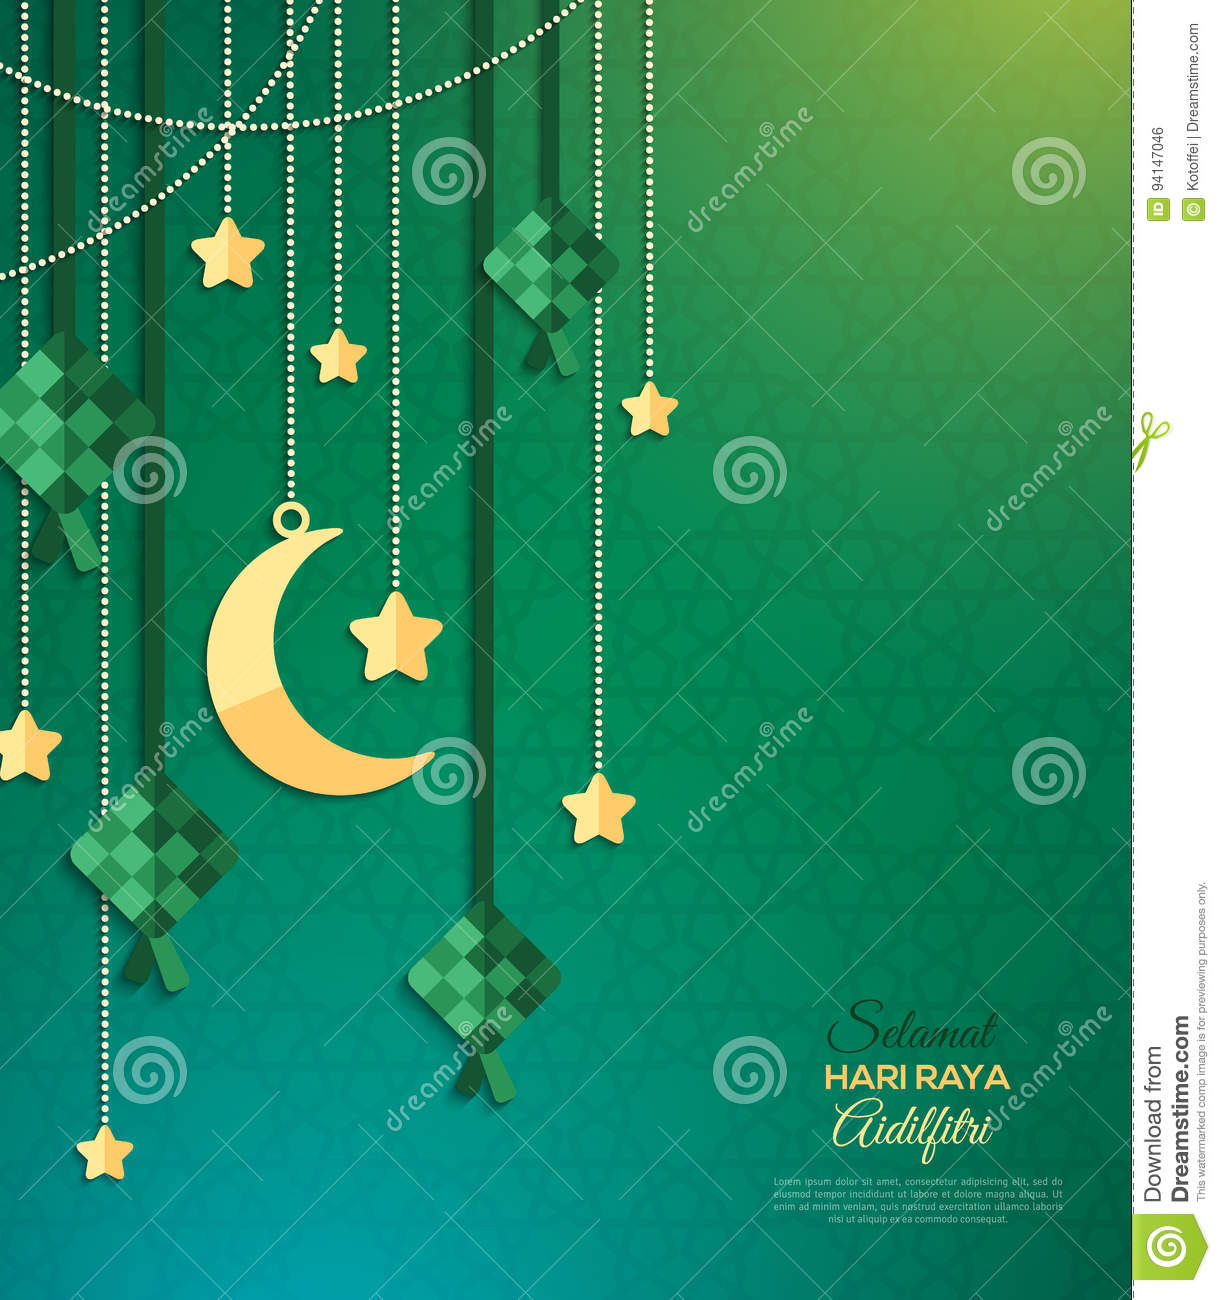 Hari Raya Greeting Card On Green Stock Vector Illustration Of